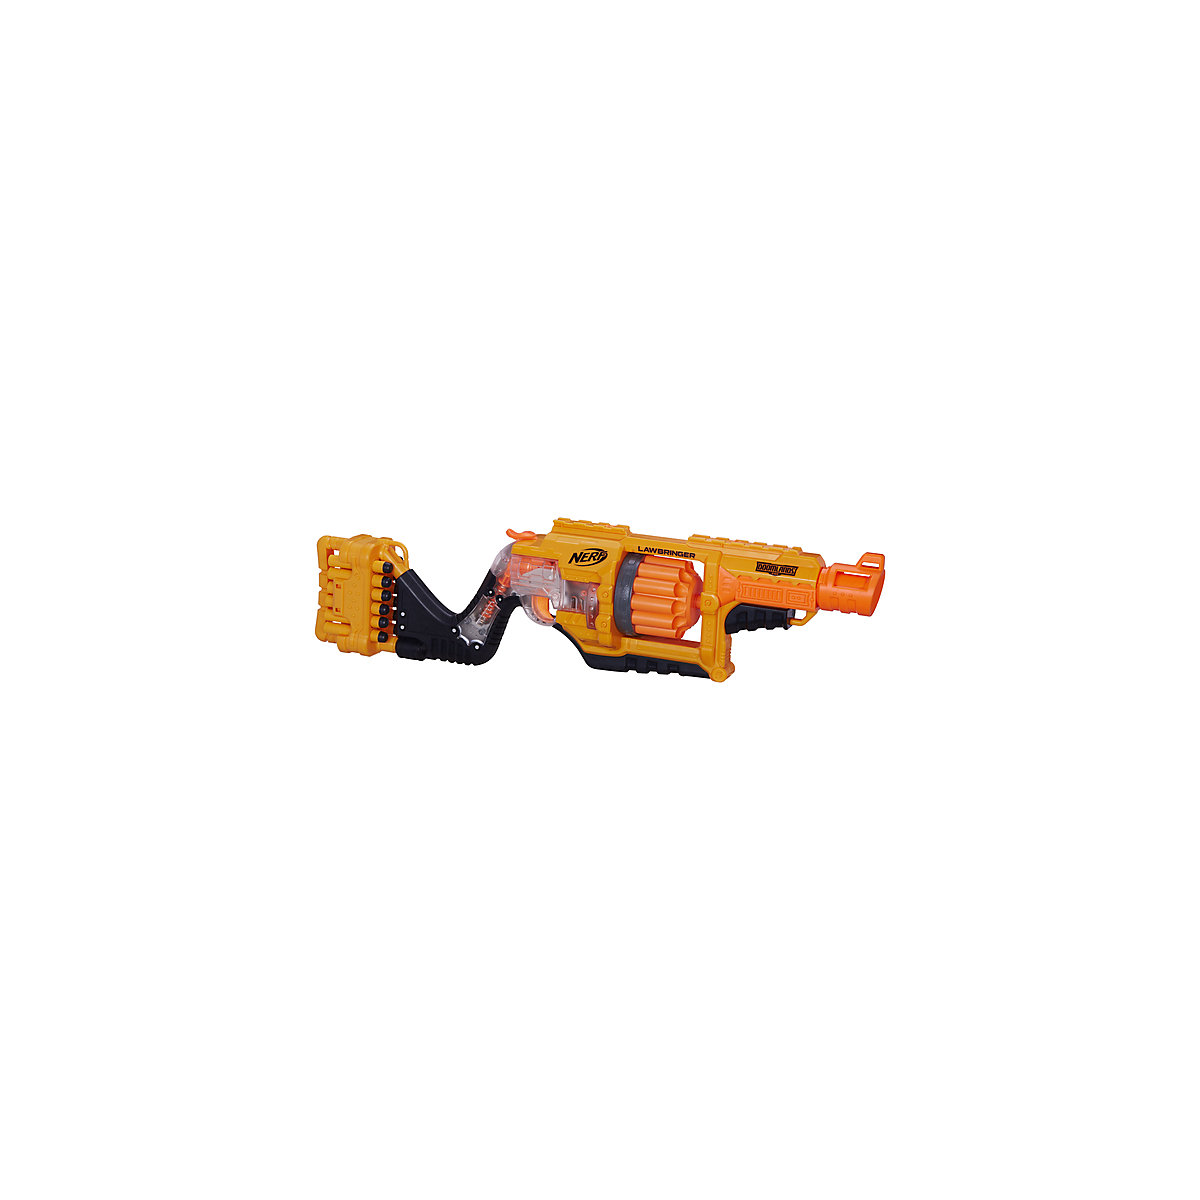 Toy Guns NERF 10023651 Children Kids Toy Gun Weapon Blasters Boys Shooting games Outdoor play free shipping surefir led weapon x400 handgun flashlight with red laser sight for rifle scope pistola airsoft guns